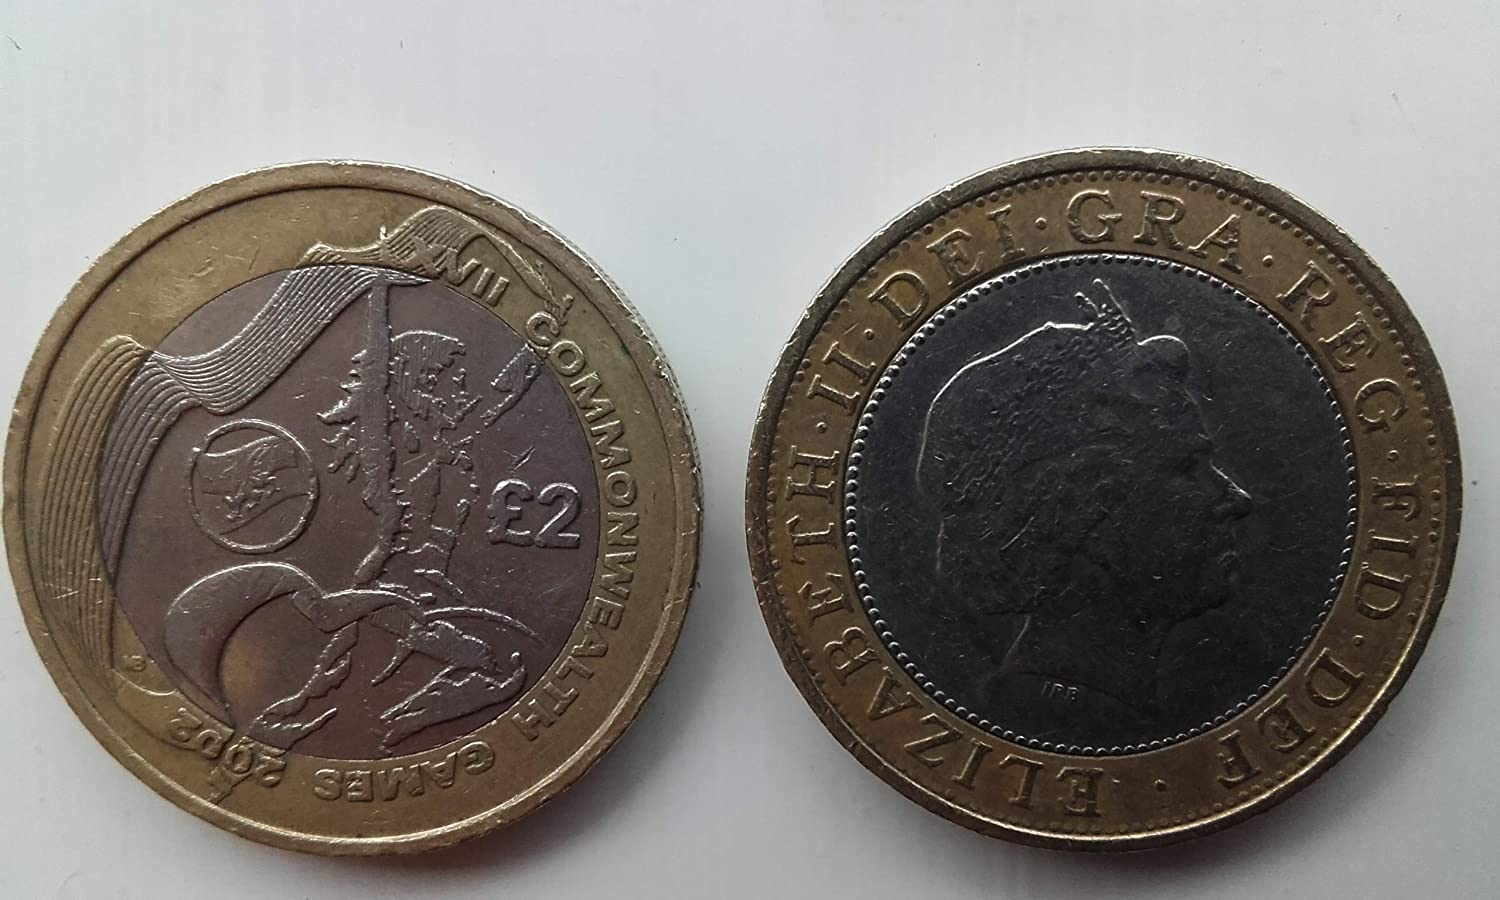 Commonwealth Games 2002 £2 coin ONE COIN   England OR Wales OR Scotland